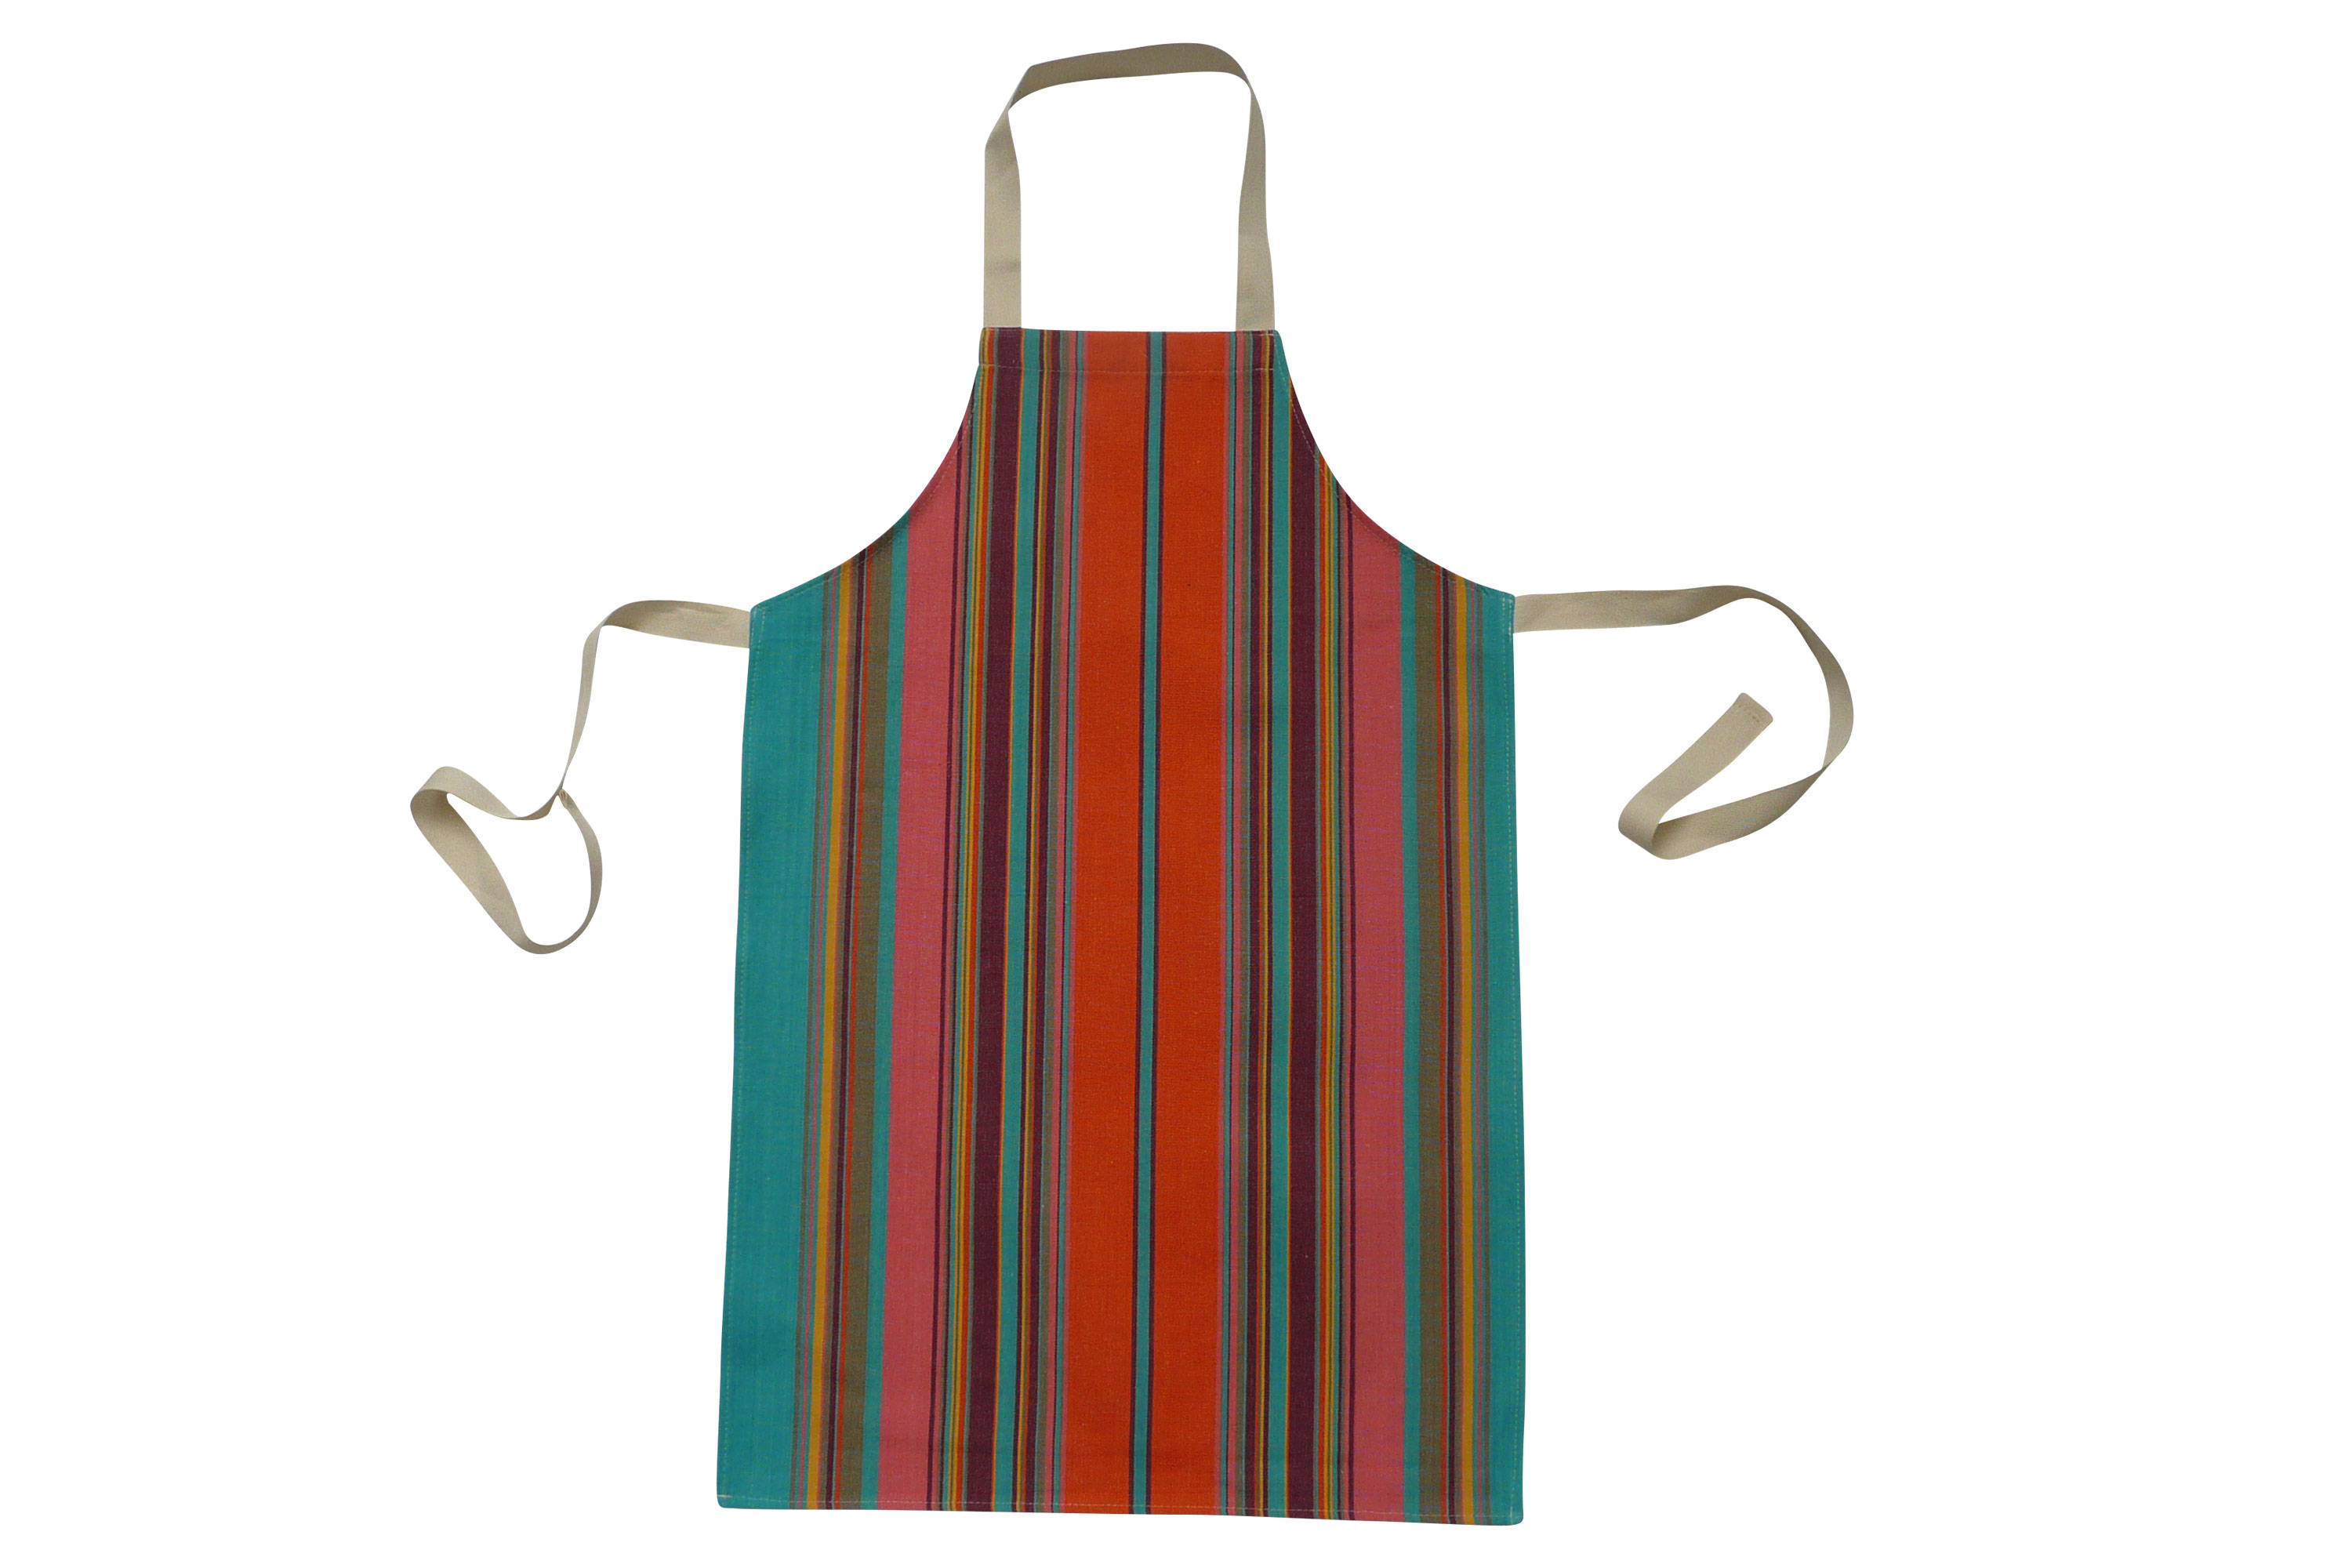 Striped Kids Aprons | Aprons for Children coral, bright green, terracotta